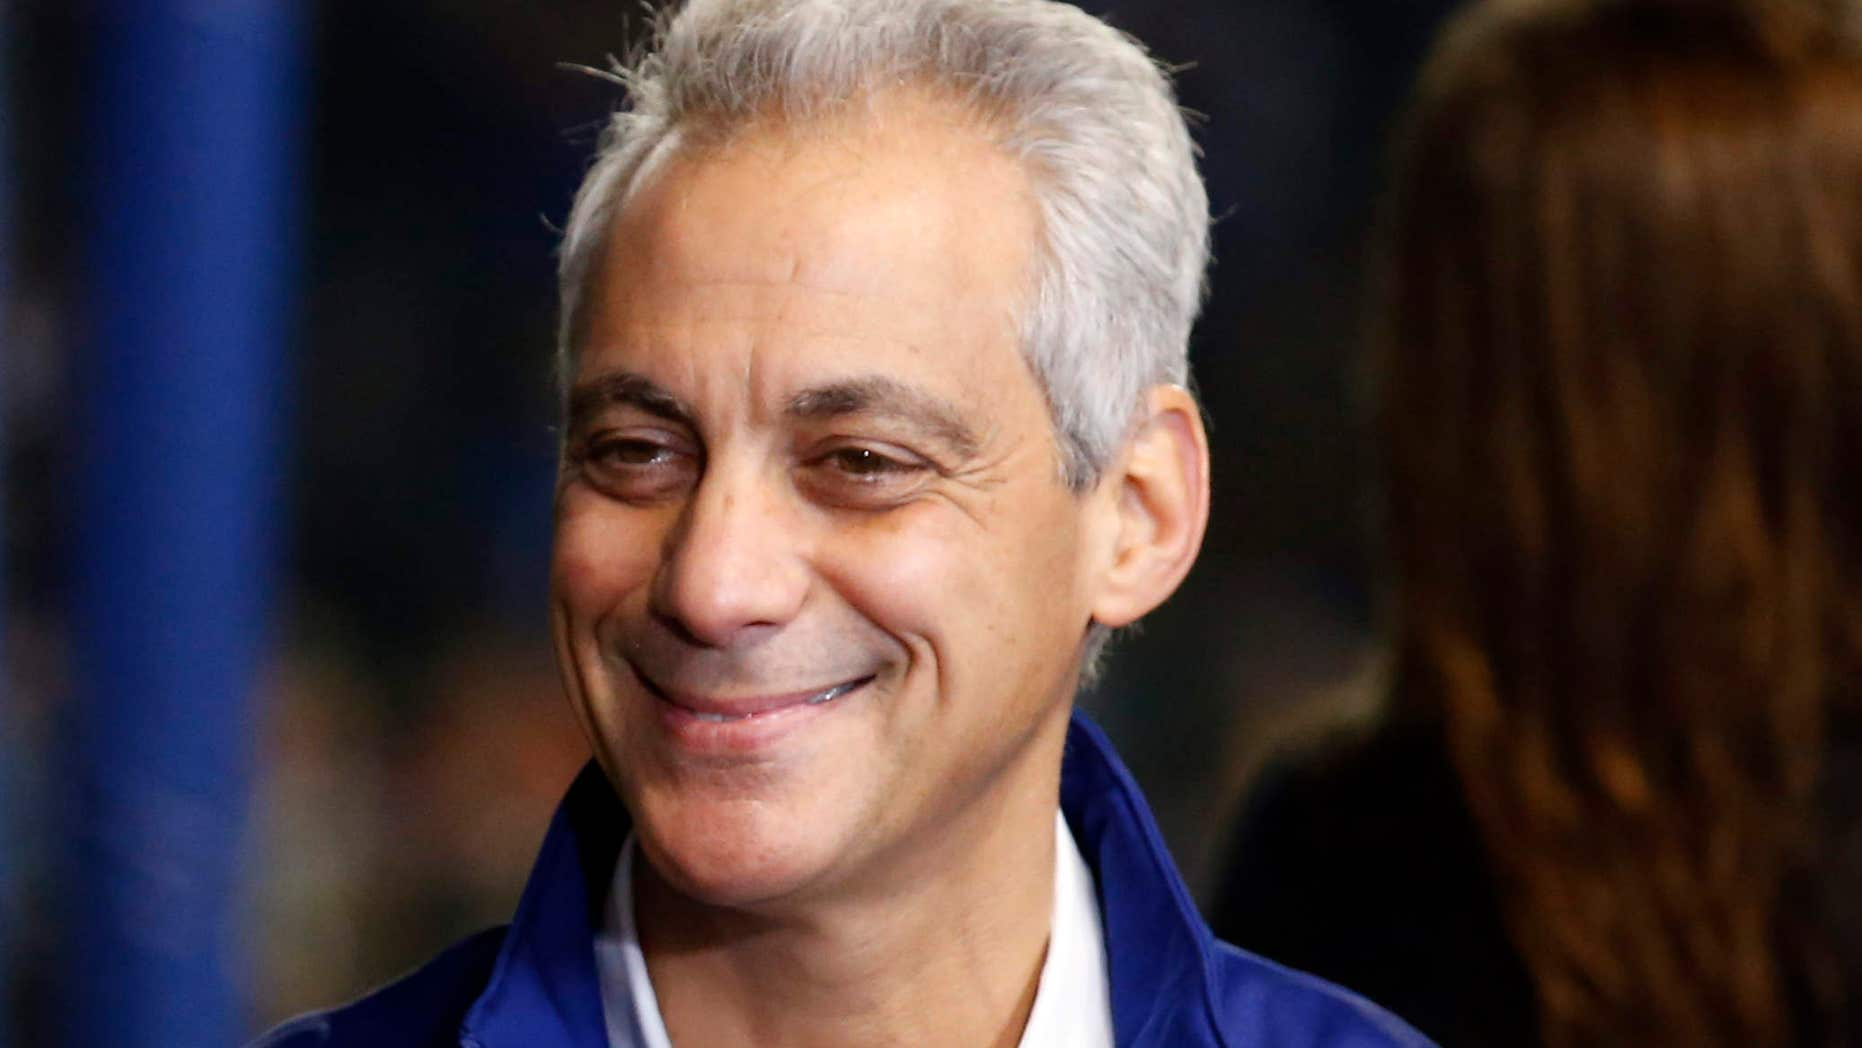 Chicago Mayor Rahm Emanuel speaks during a television interview before Game 4 of the Major League Baseball World Series between the Chicago Cubs and the Cleveland Indians, Saturday, Oct. 29, 2016, in Chicago.